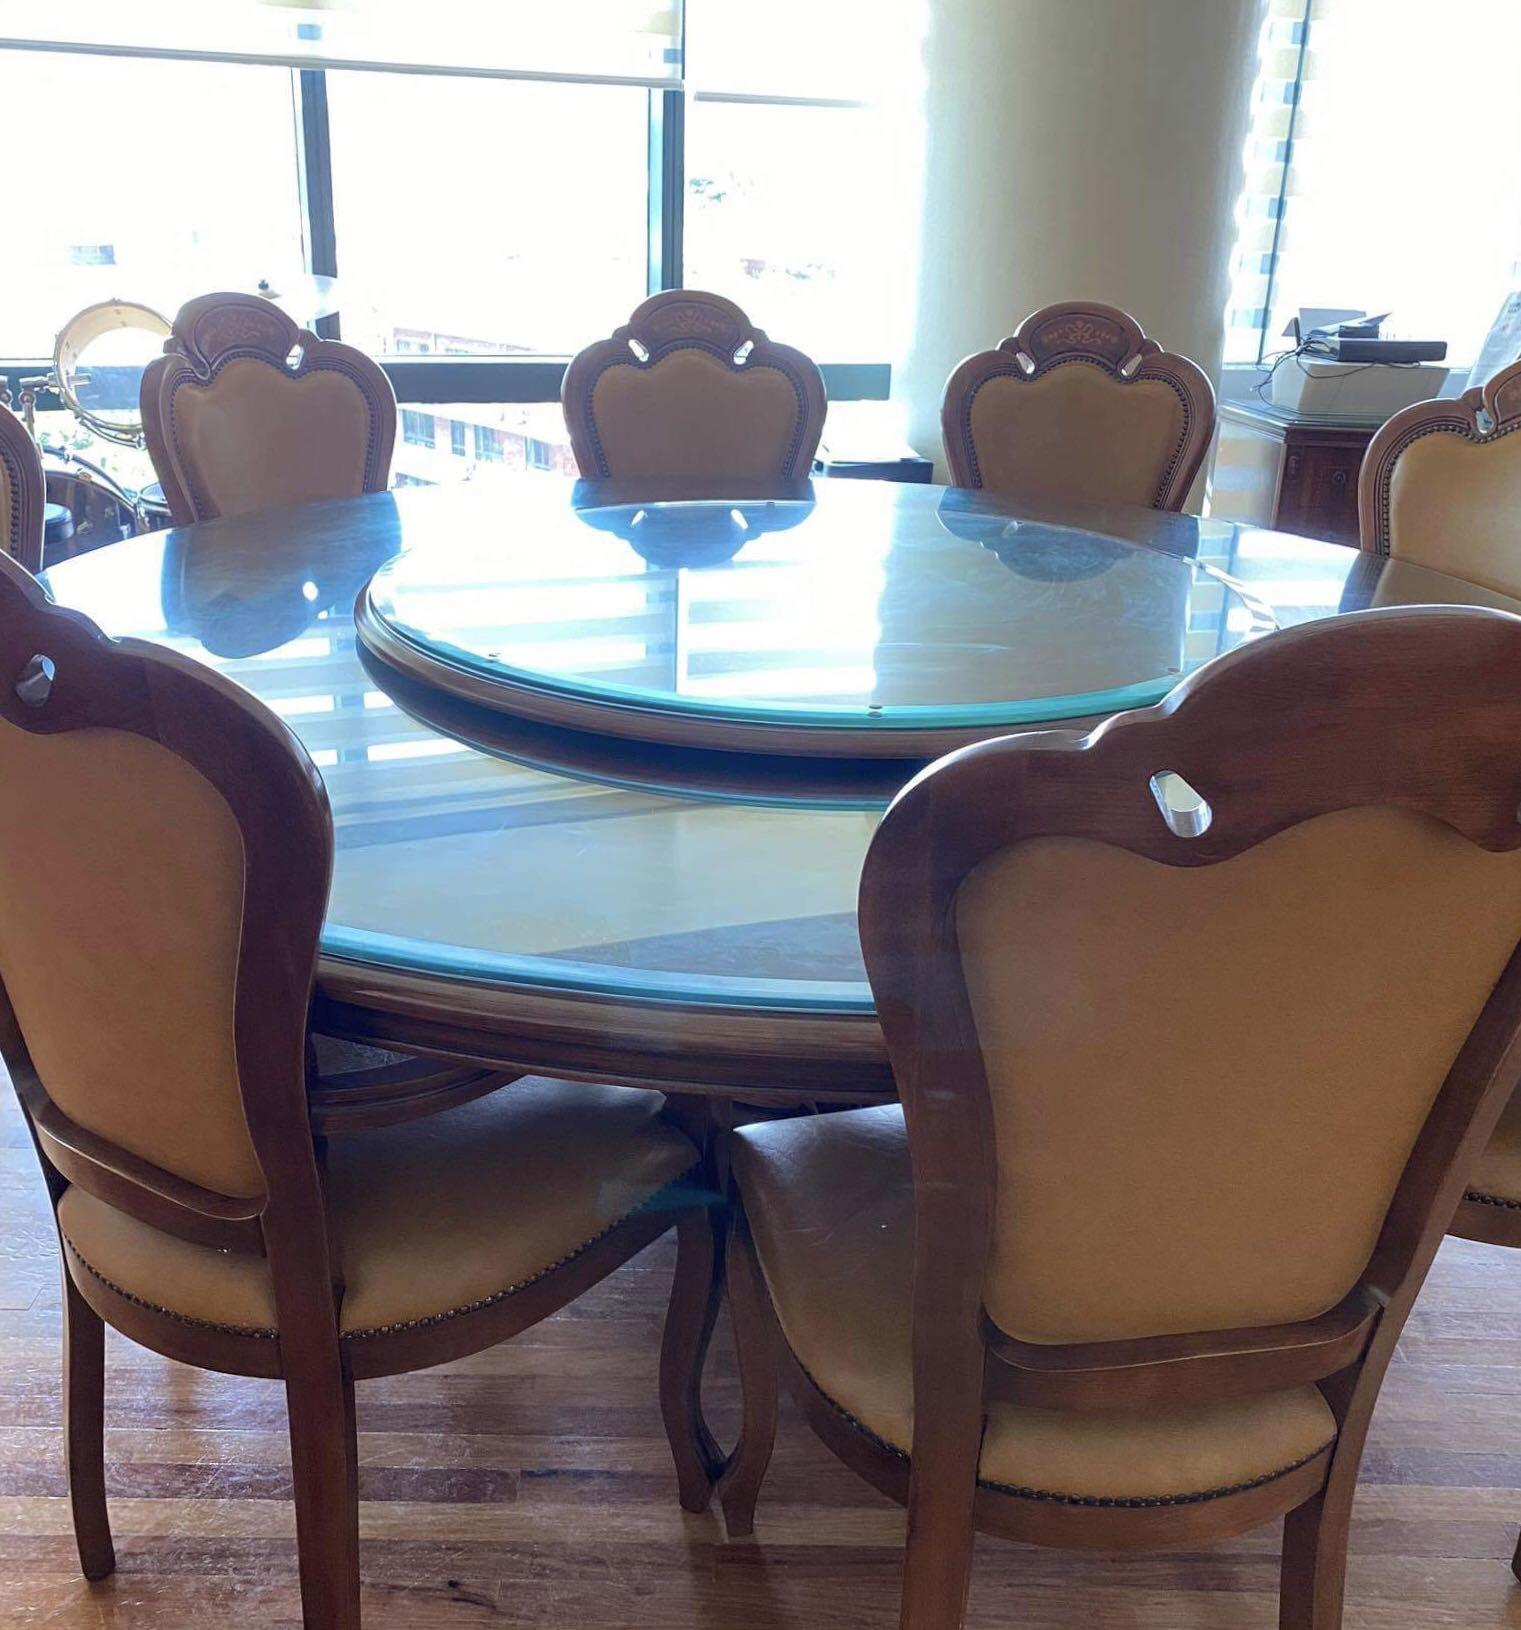 Muebles Italiano 8 Seater Round Dining Table Home Furniture Furniture Fixtures Tables Chairs On Carousell